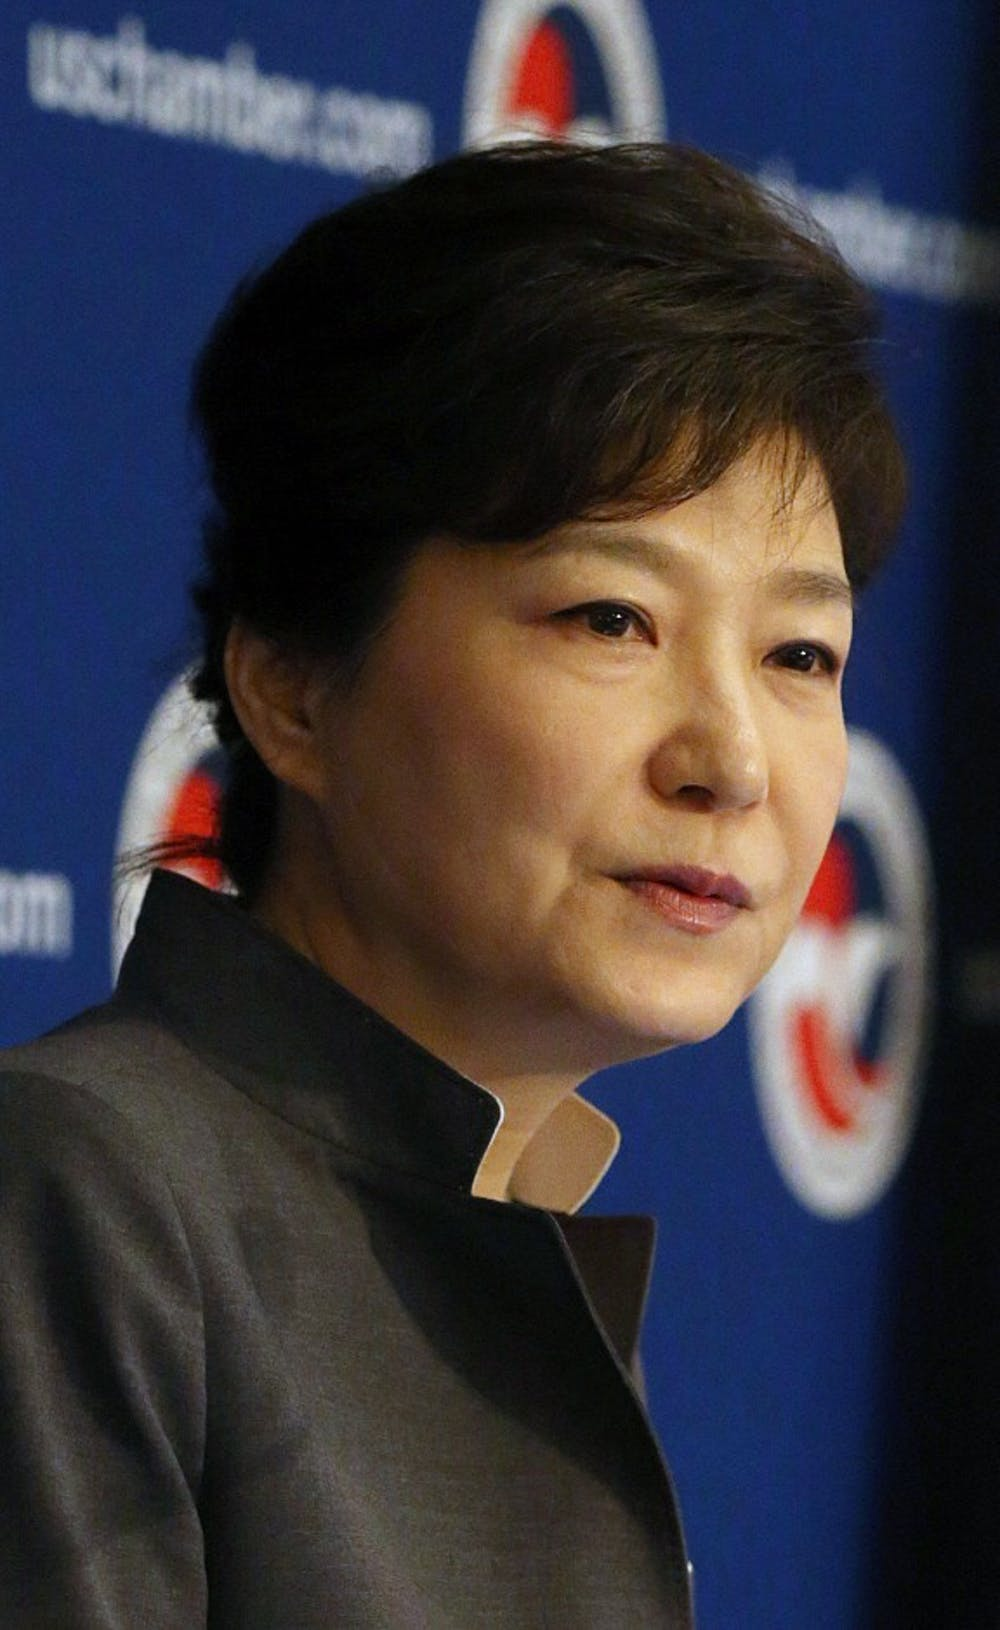 Attending Roundtable Luncheon Hosted by U.S. Chamber of Commerce